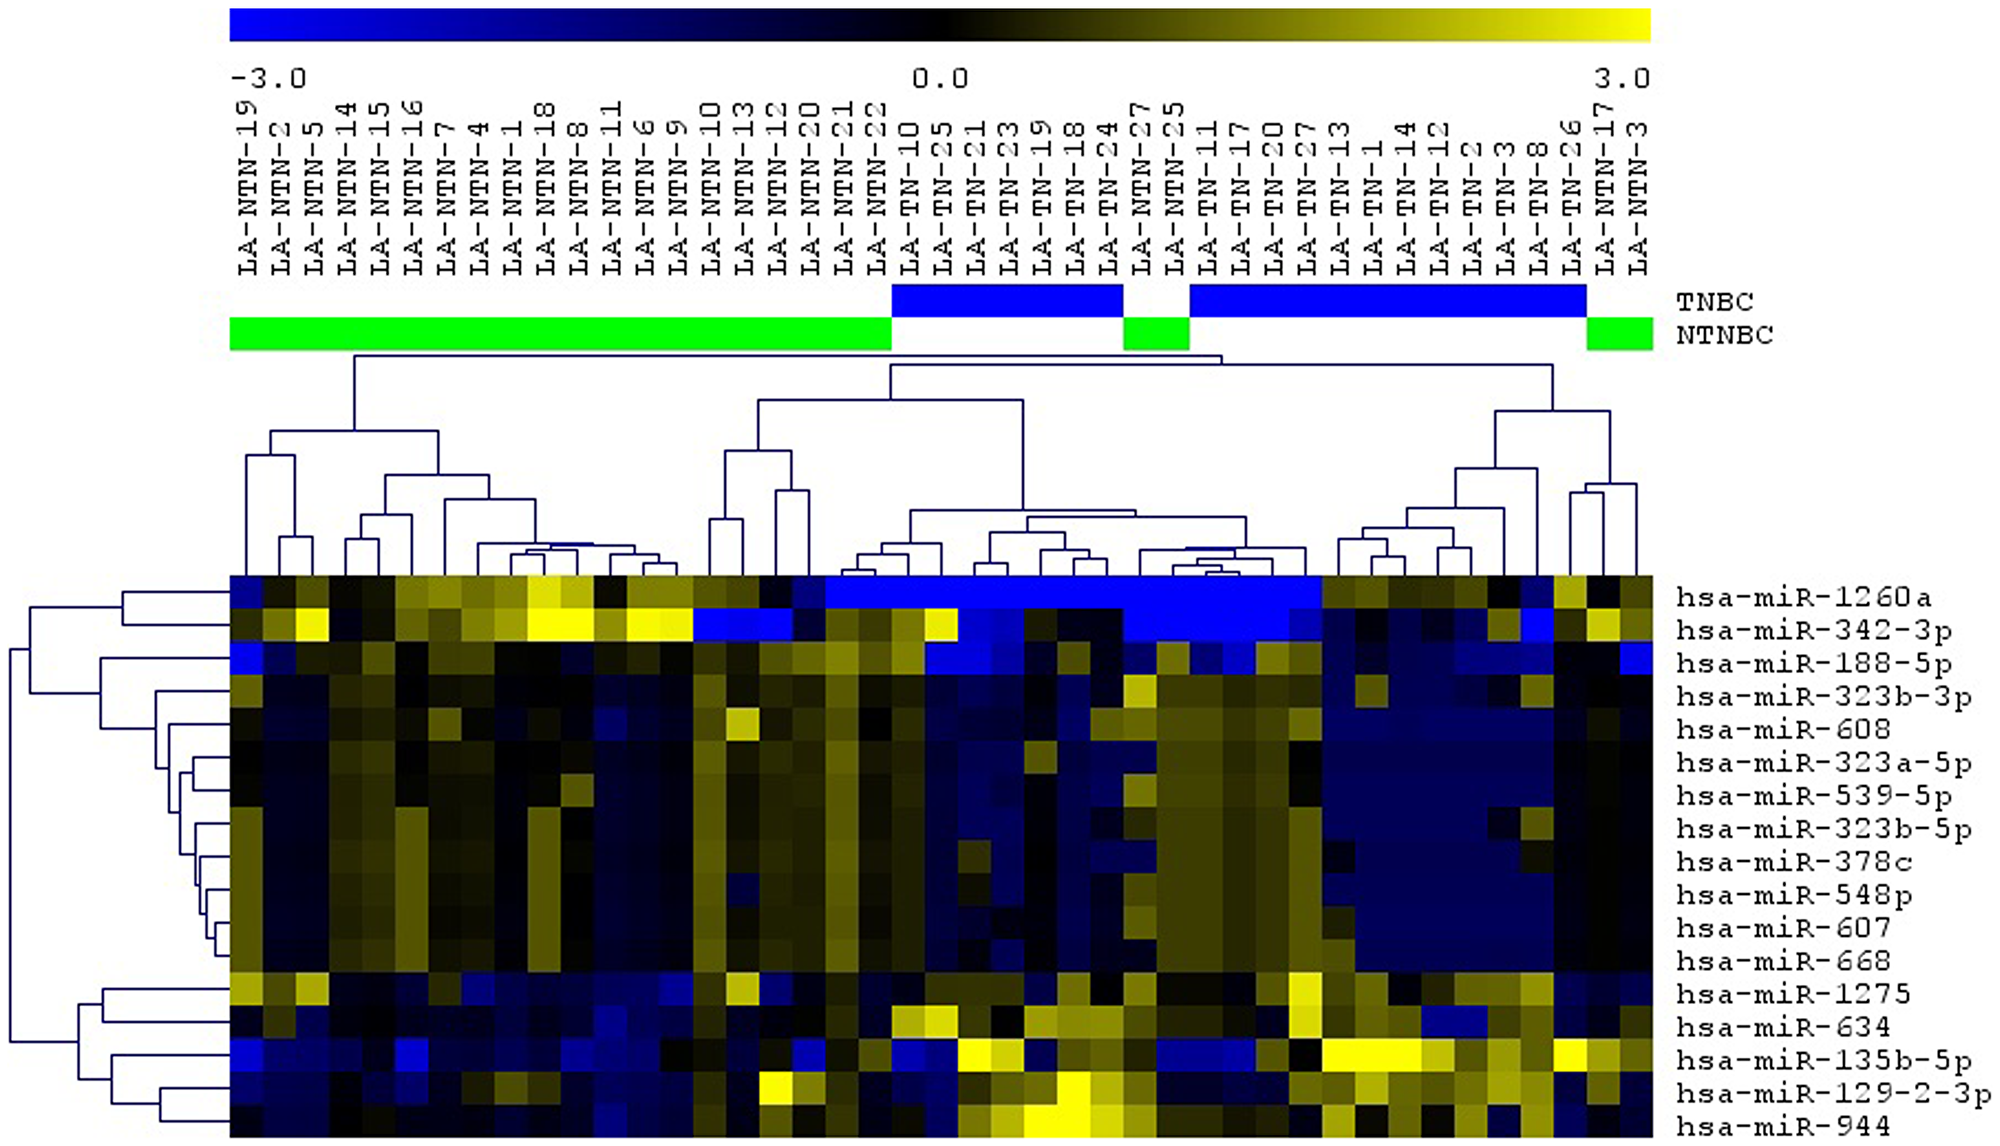 Unsupervised hierarchical clustering (UHS) analysis applied to the TNBC (blue bars) and non-TNBC (green bars) cases analyzed using the selected 17 miRNAs.